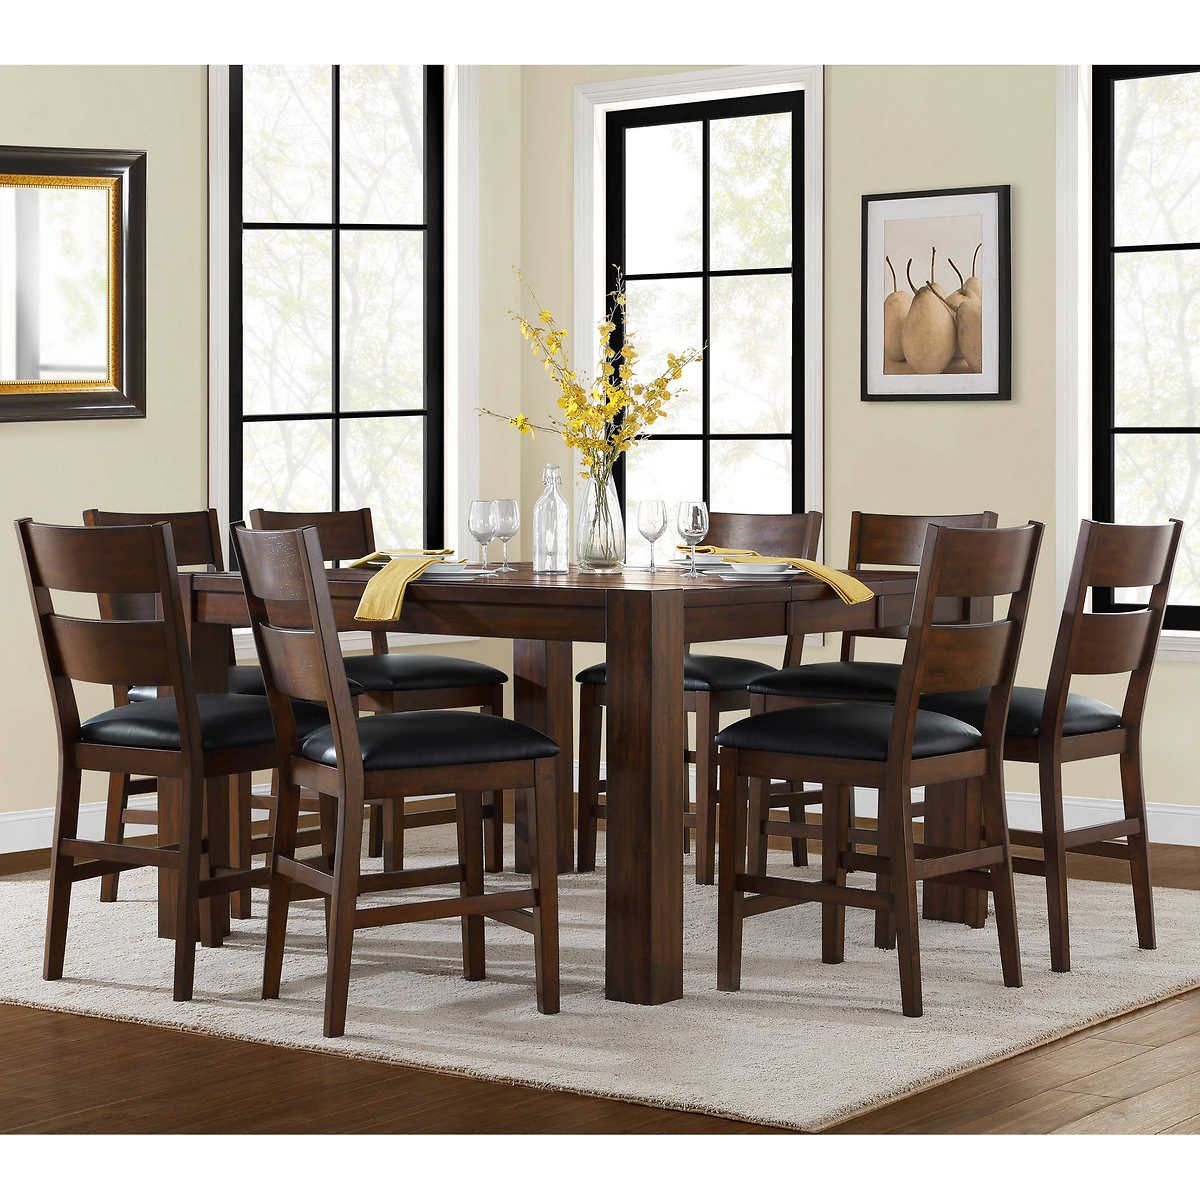 Pin By Tsh On Dining Counter Height Dining Sets Dining Set Dining